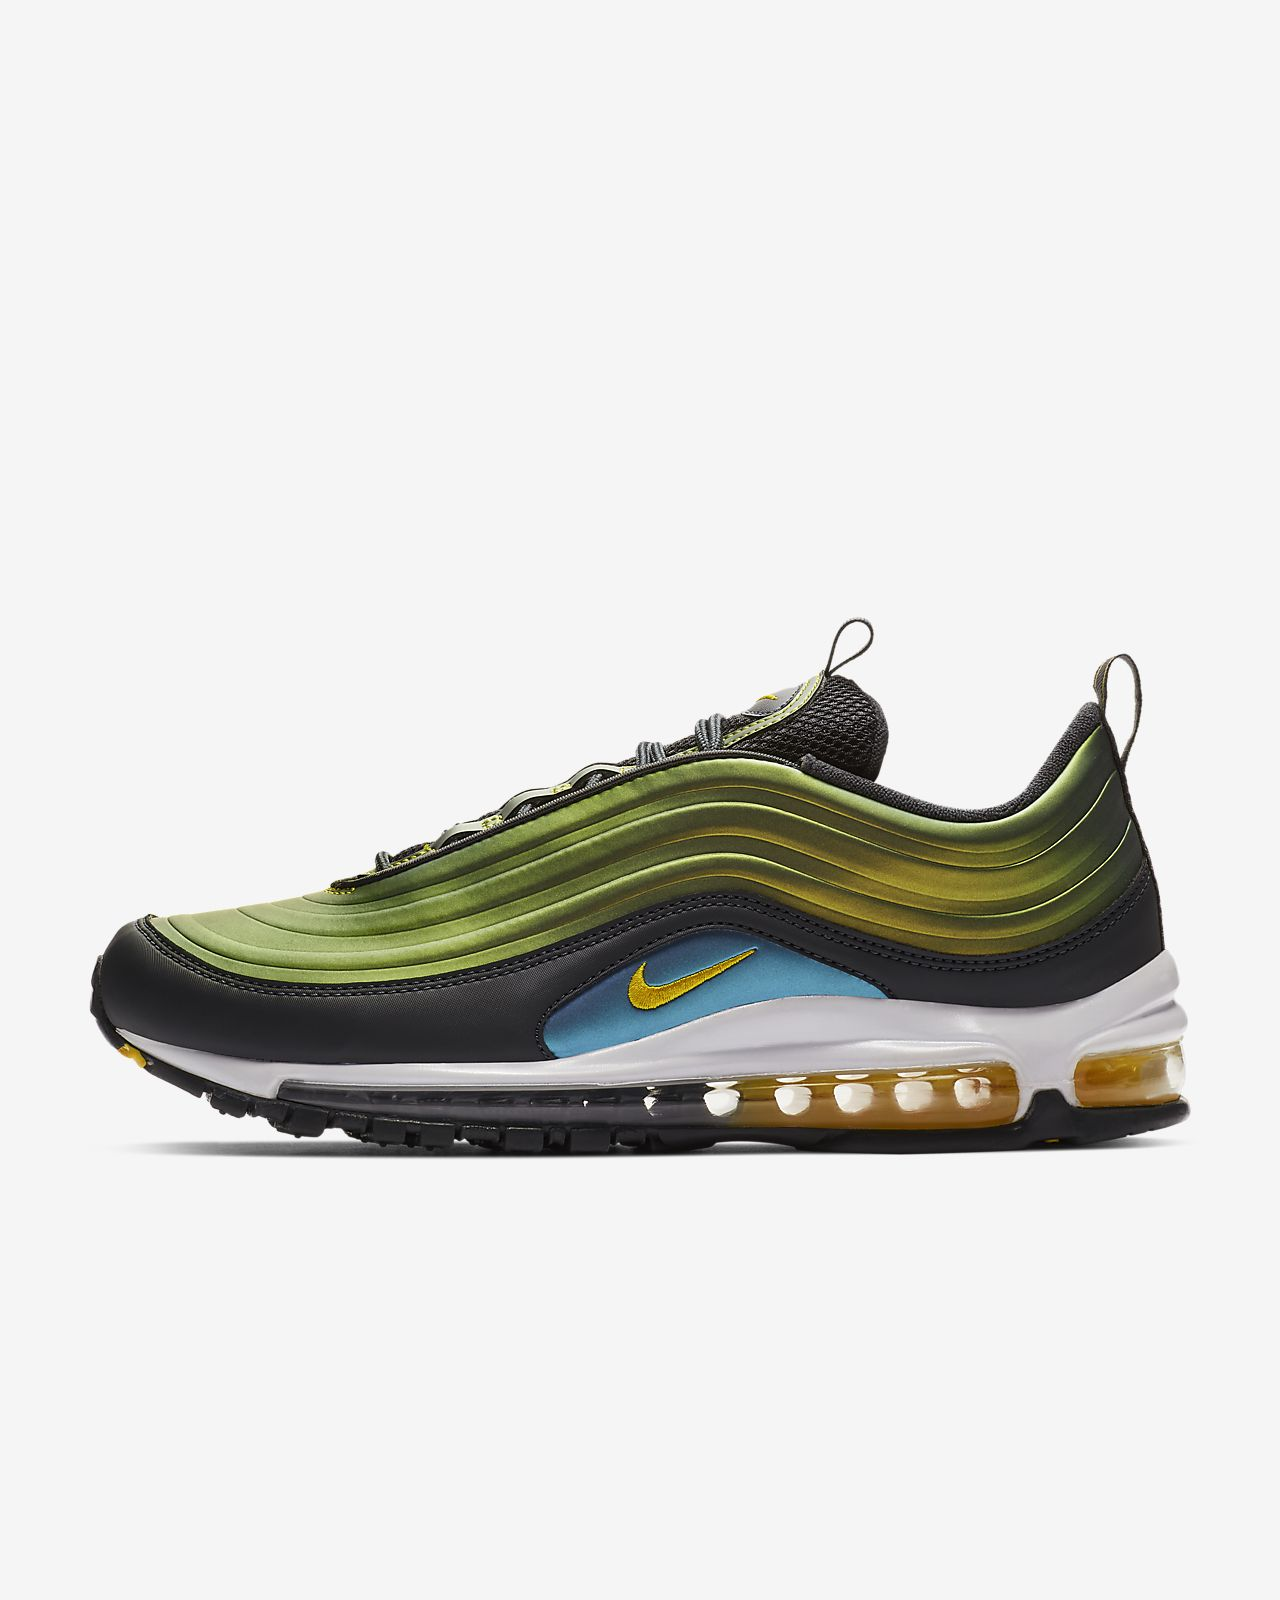 differently bce2c e3aa7 ... Nike Air Max 97 LX Men s Shoe